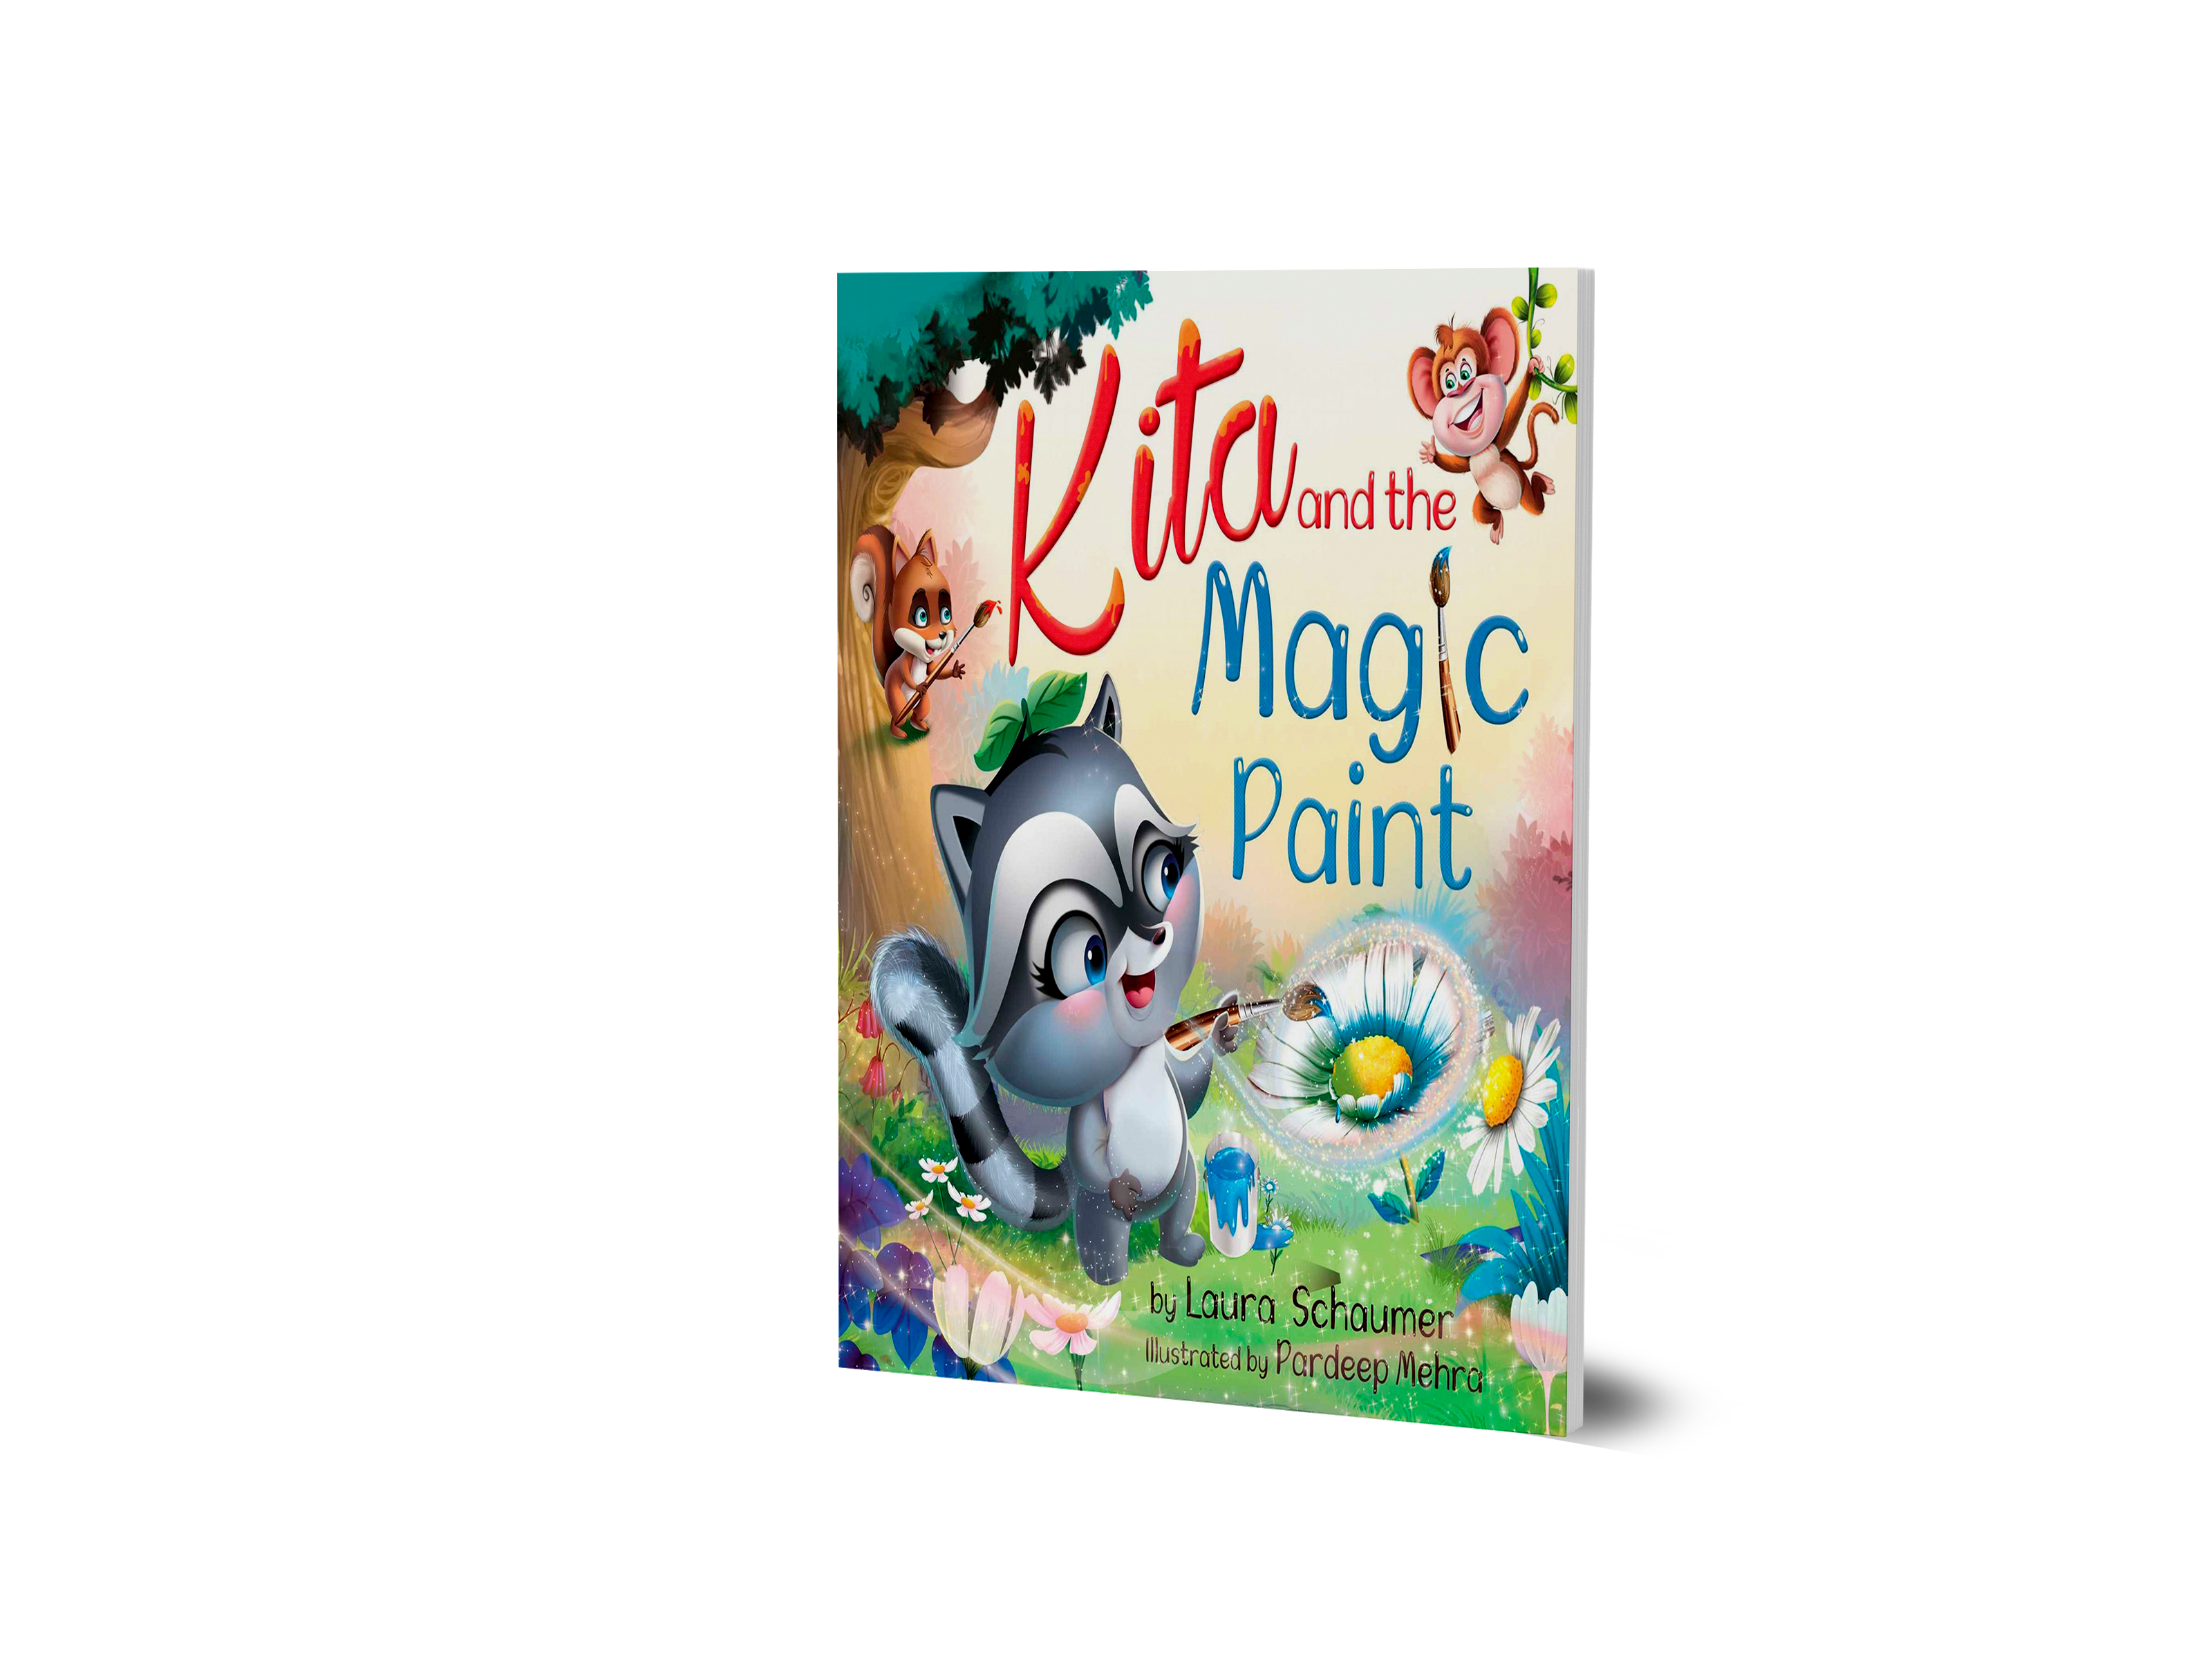 Kita and the Magic Paint